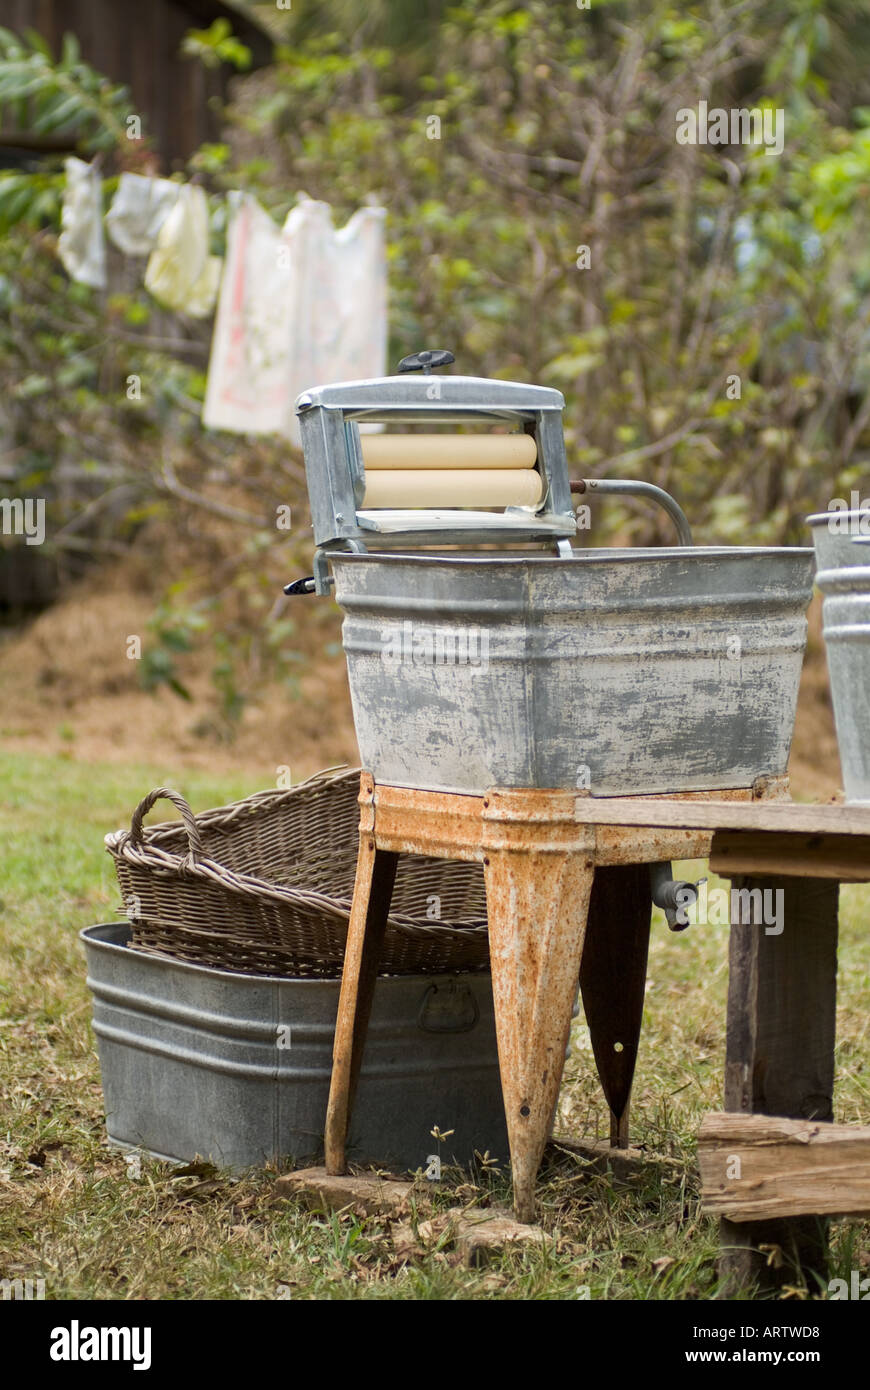 stock photo laundry washer old fashioned washtub wash tub dudley farm historic state park newberry florida antiques antique